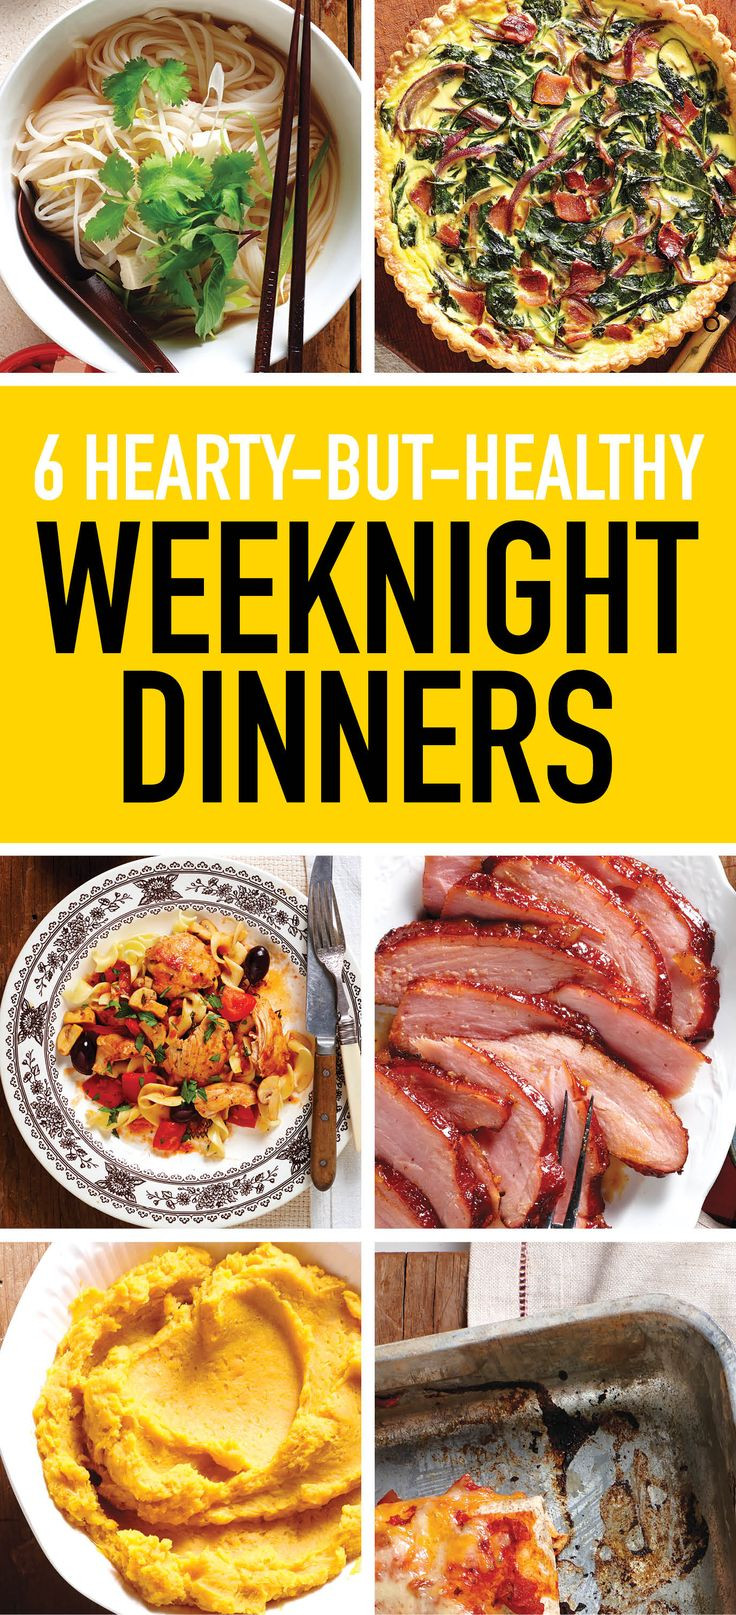 Healthy Weeknight Dinners  7 hearty but healthy recipes for weeknight dinners